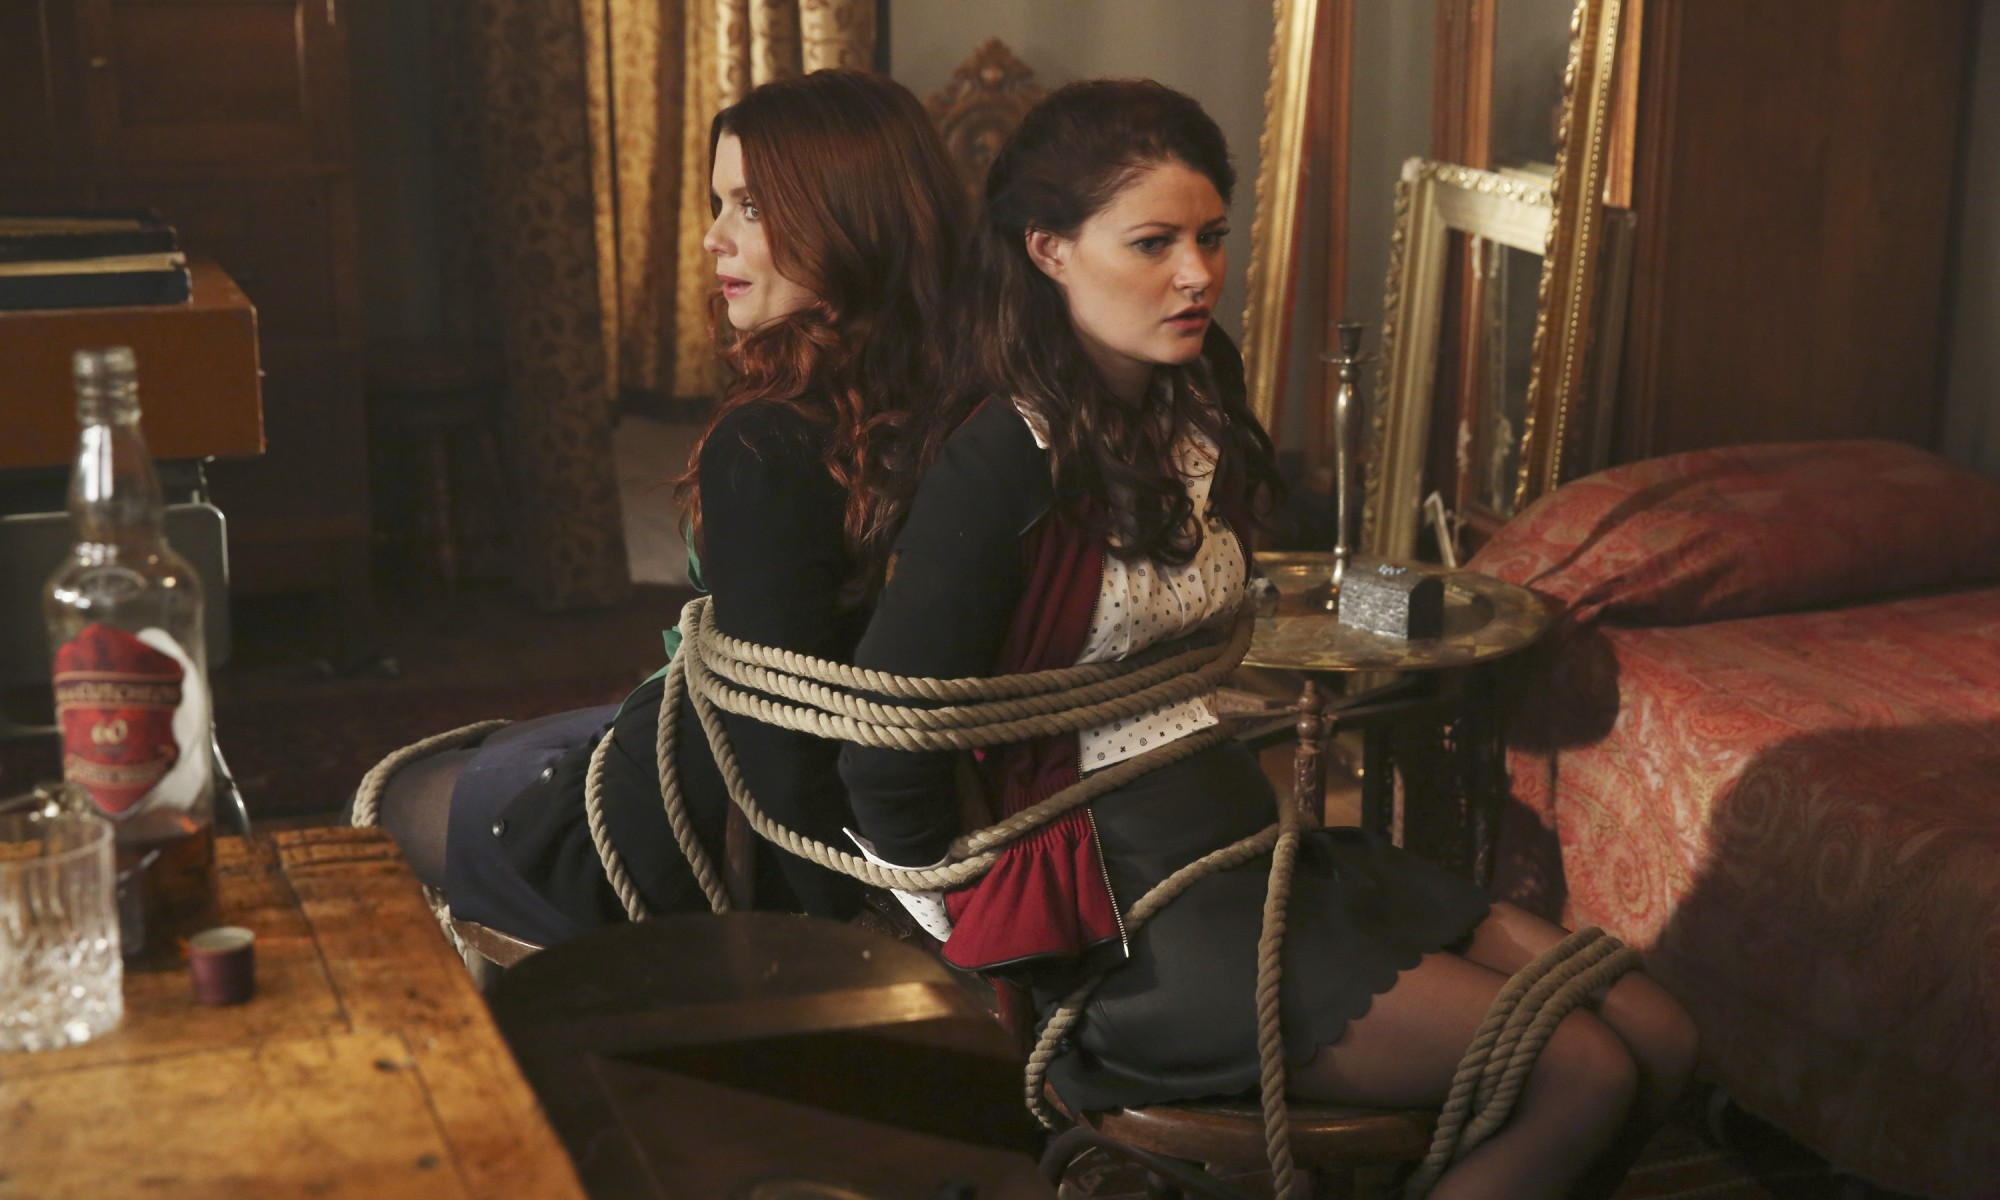 Belle and Ariel find themselves captured in Storybrooke